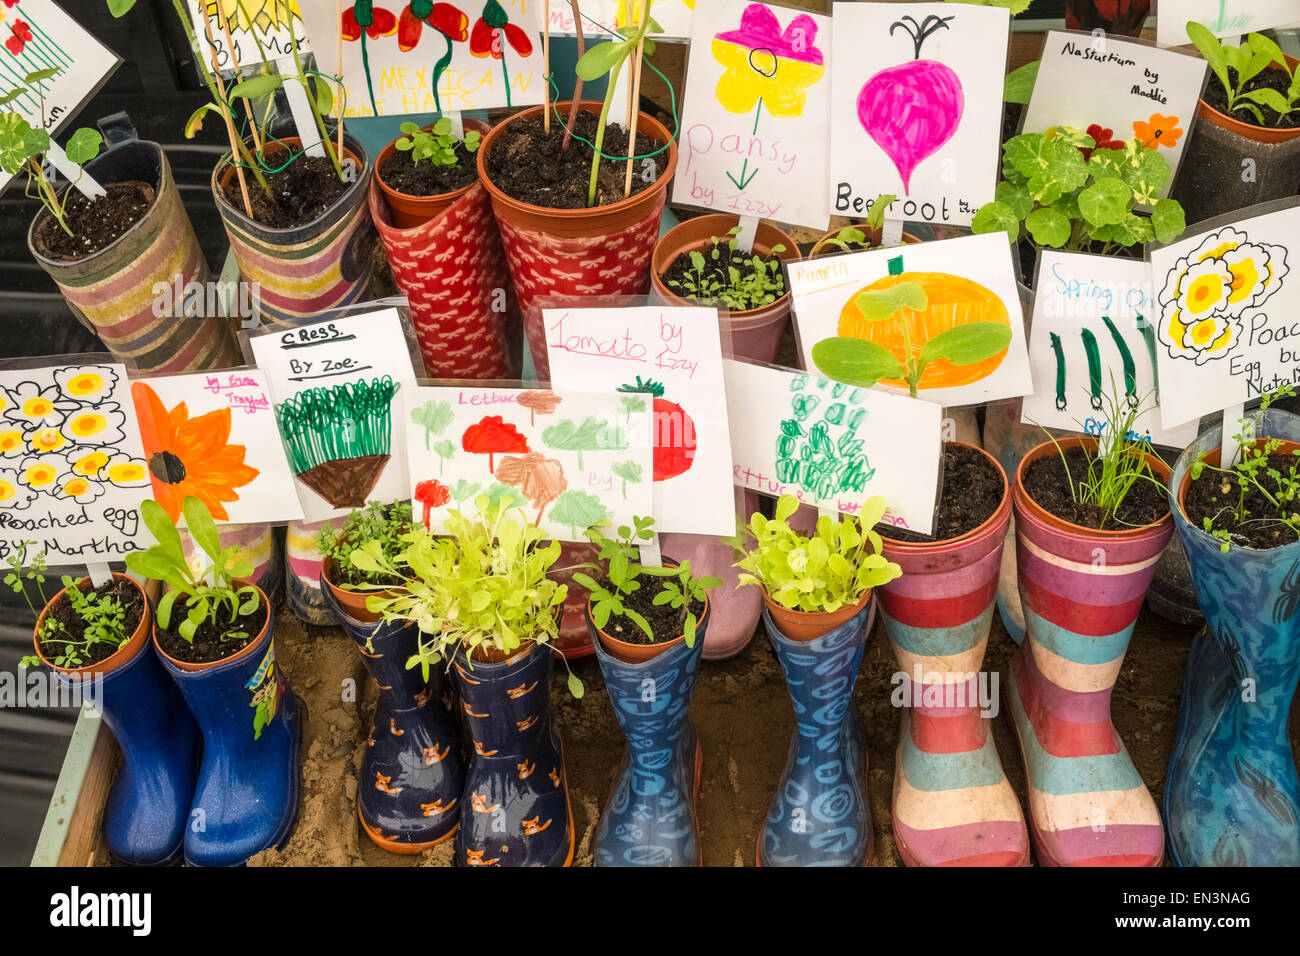 Young container plants grown by children in colourful wellington boots, with descriptive labels attached. Stock Photo